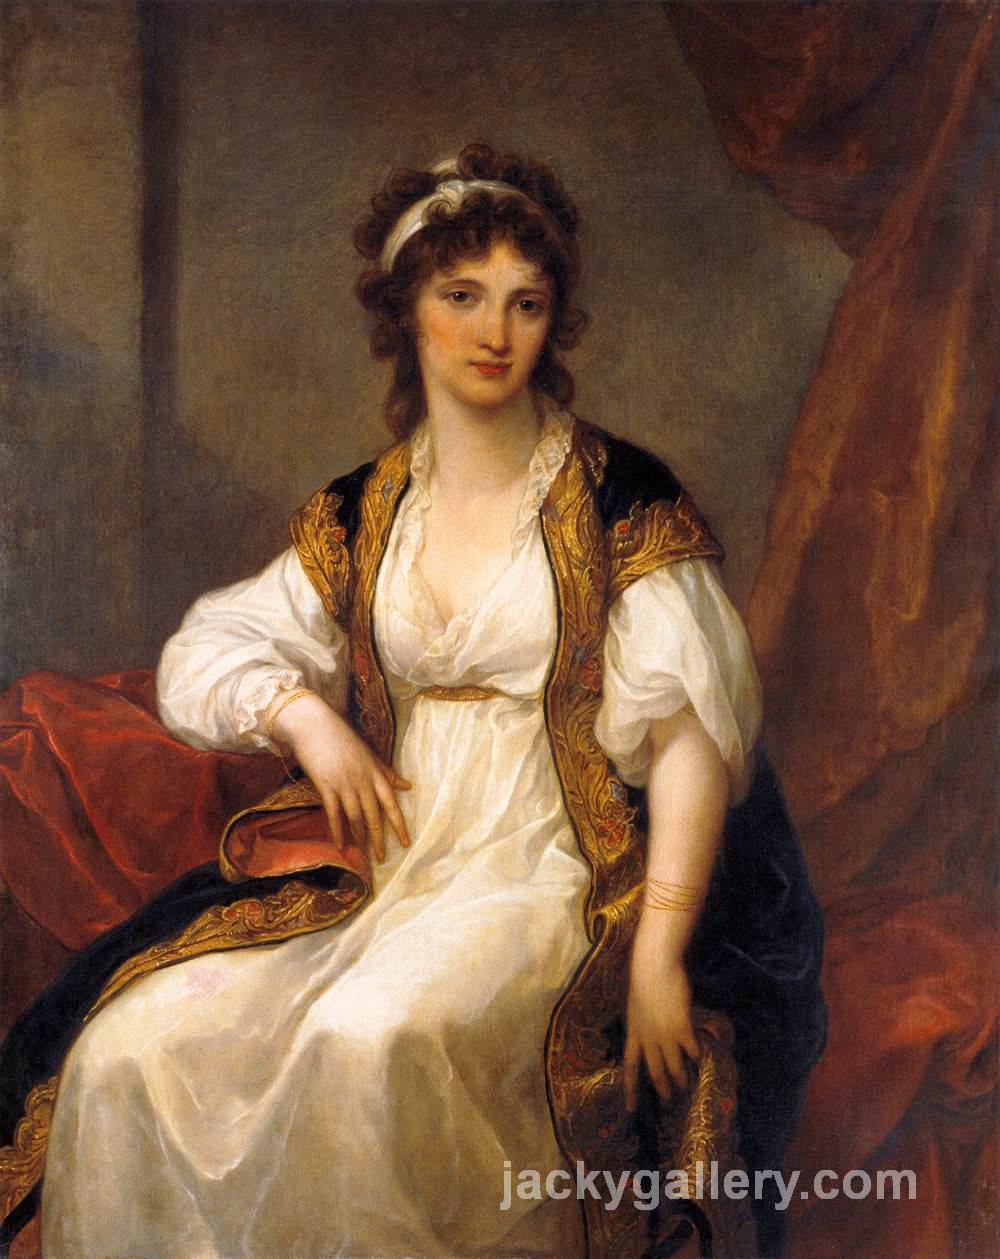 Portrait of a Young Woman, Angelica Kauffman painting